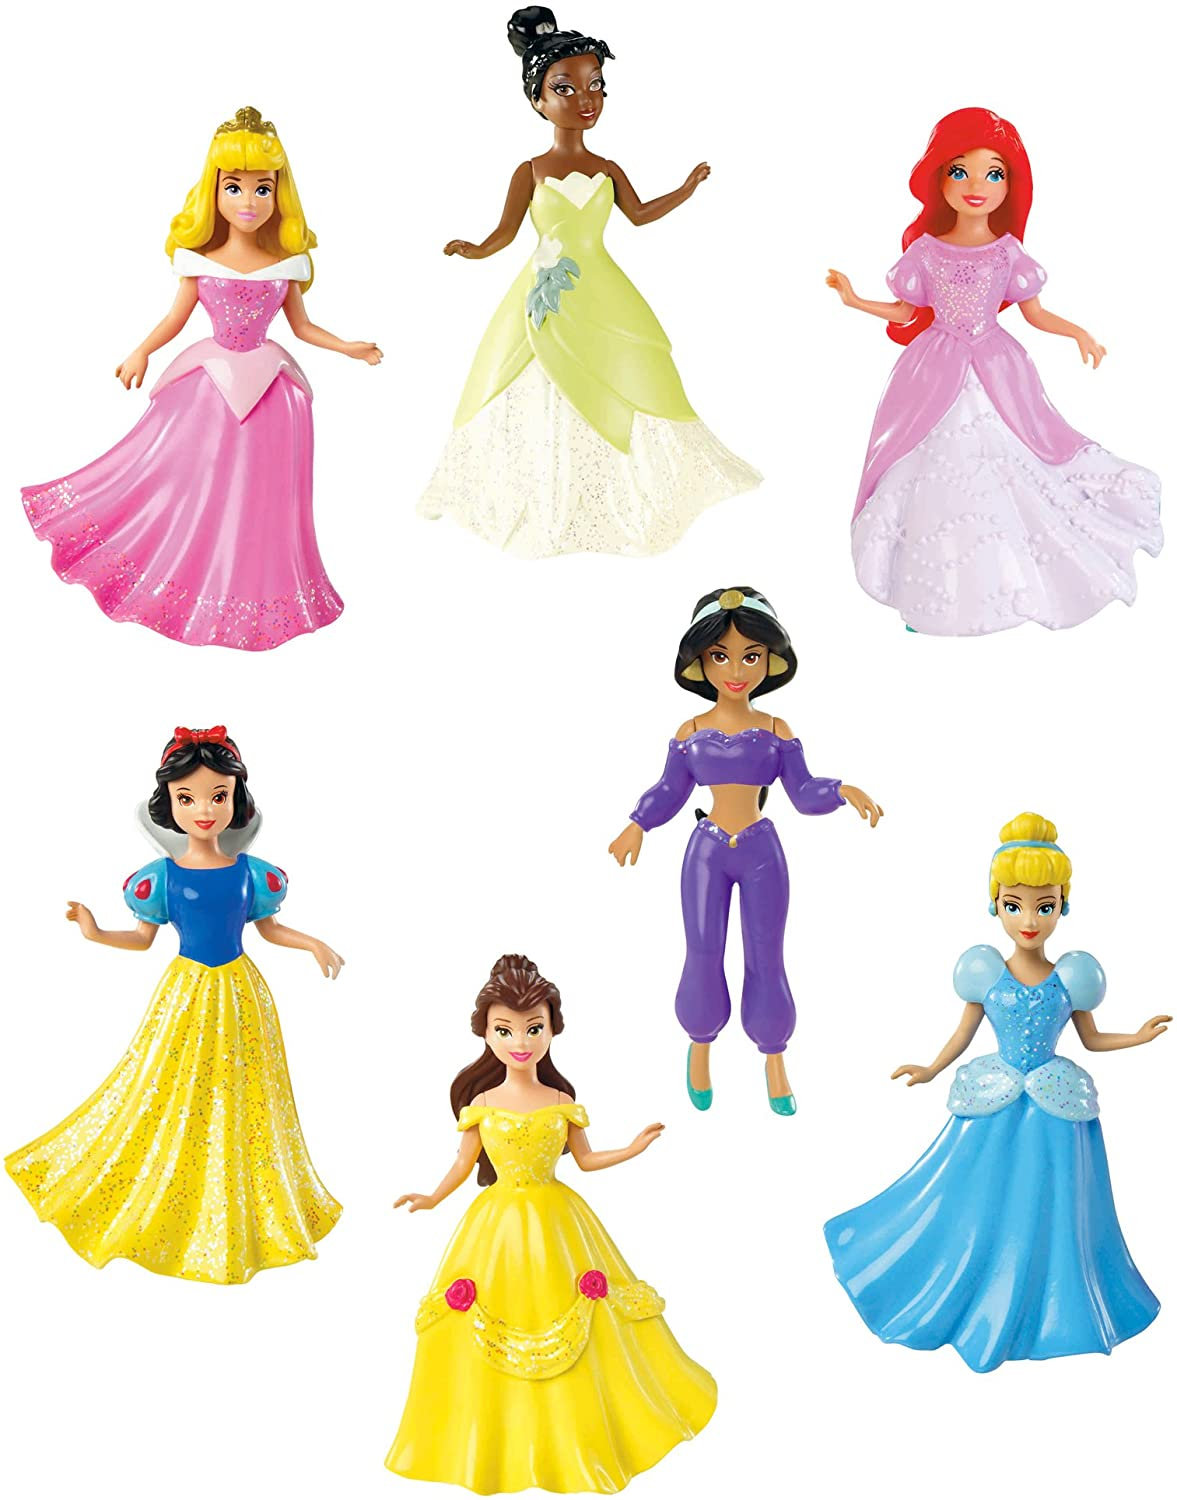 Max 43% OFF Disney Princess Collection 7-Doll New item Set Gift